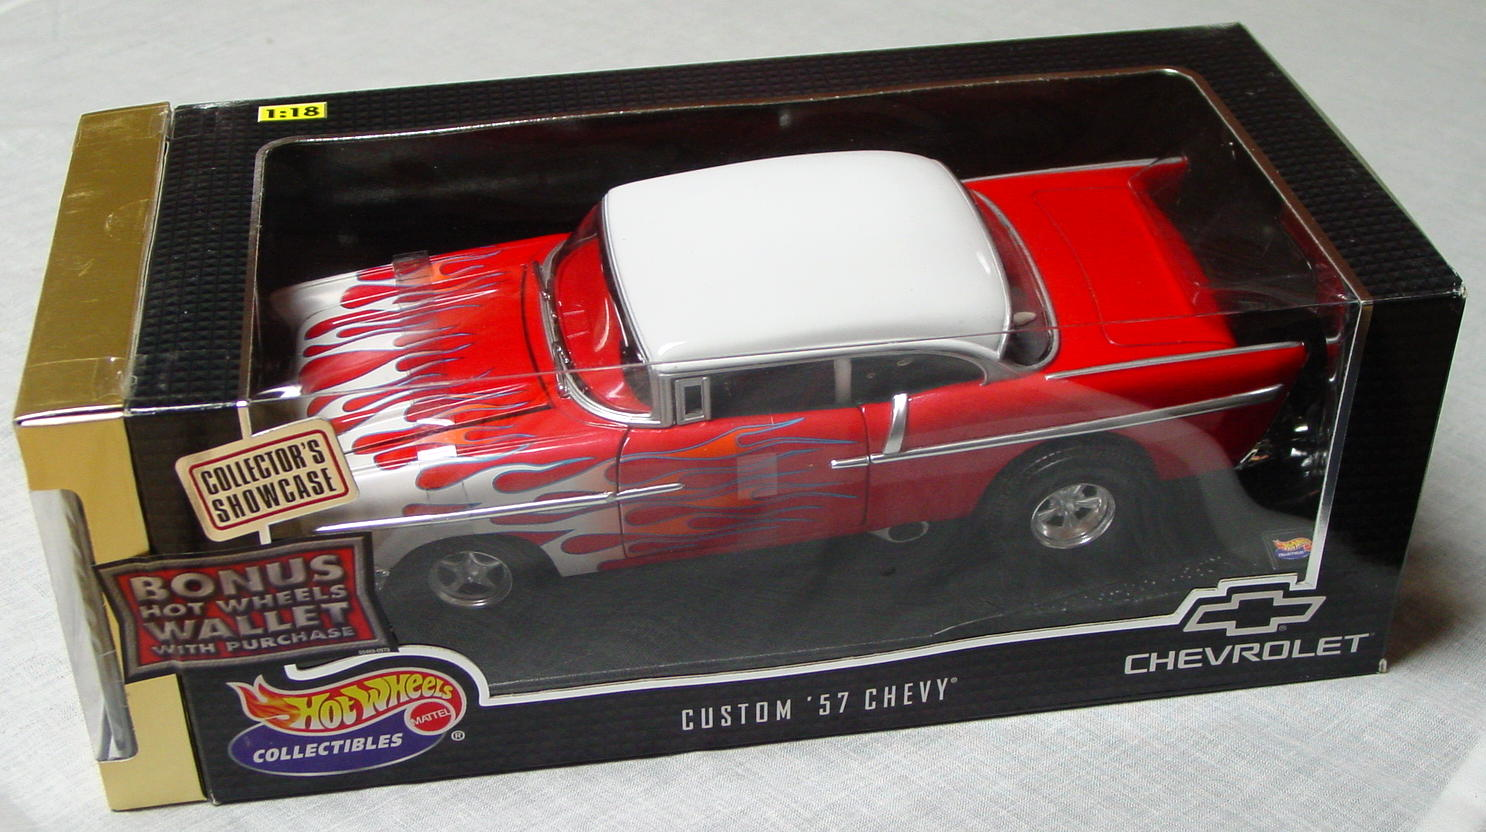 1_18 Scale - HW Custom 57 Chevy Red and White with wallet